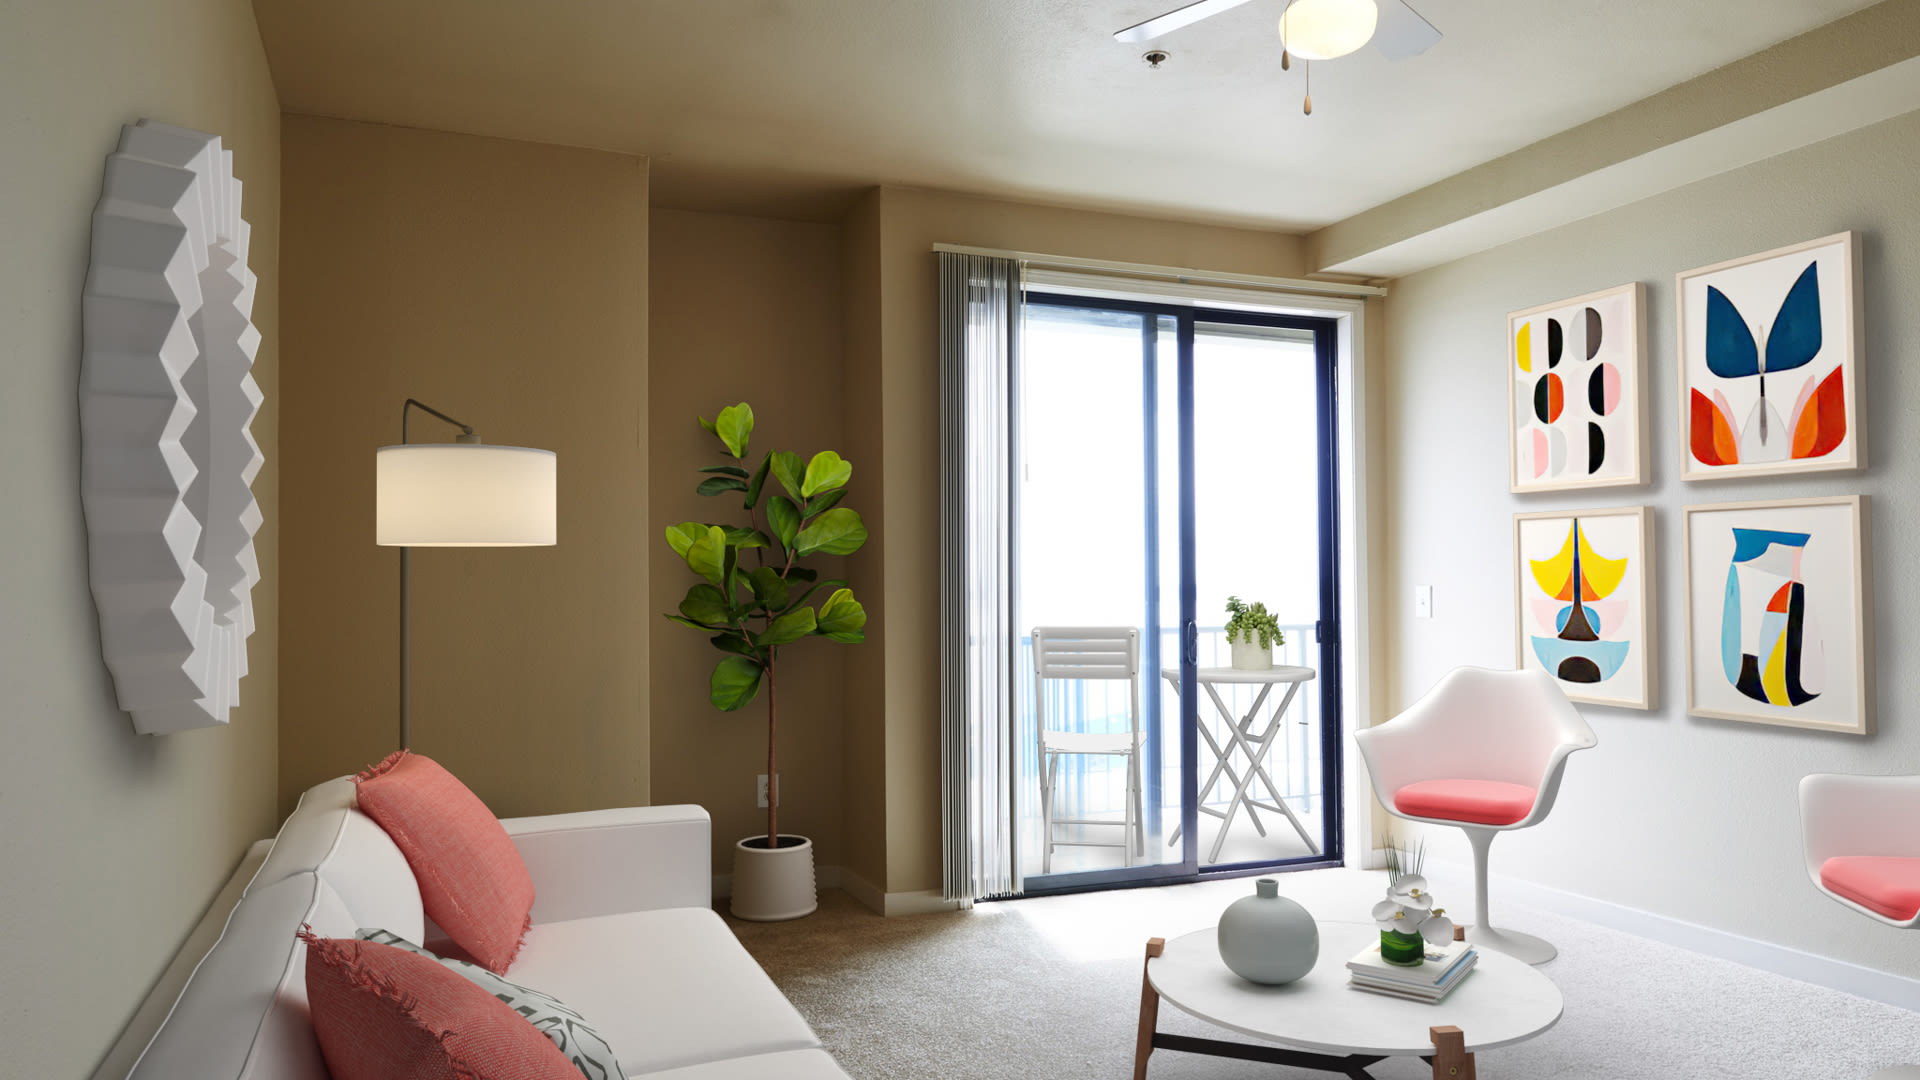 2300 Elliot Apartments - Carpeted Living Room with Private Balcony